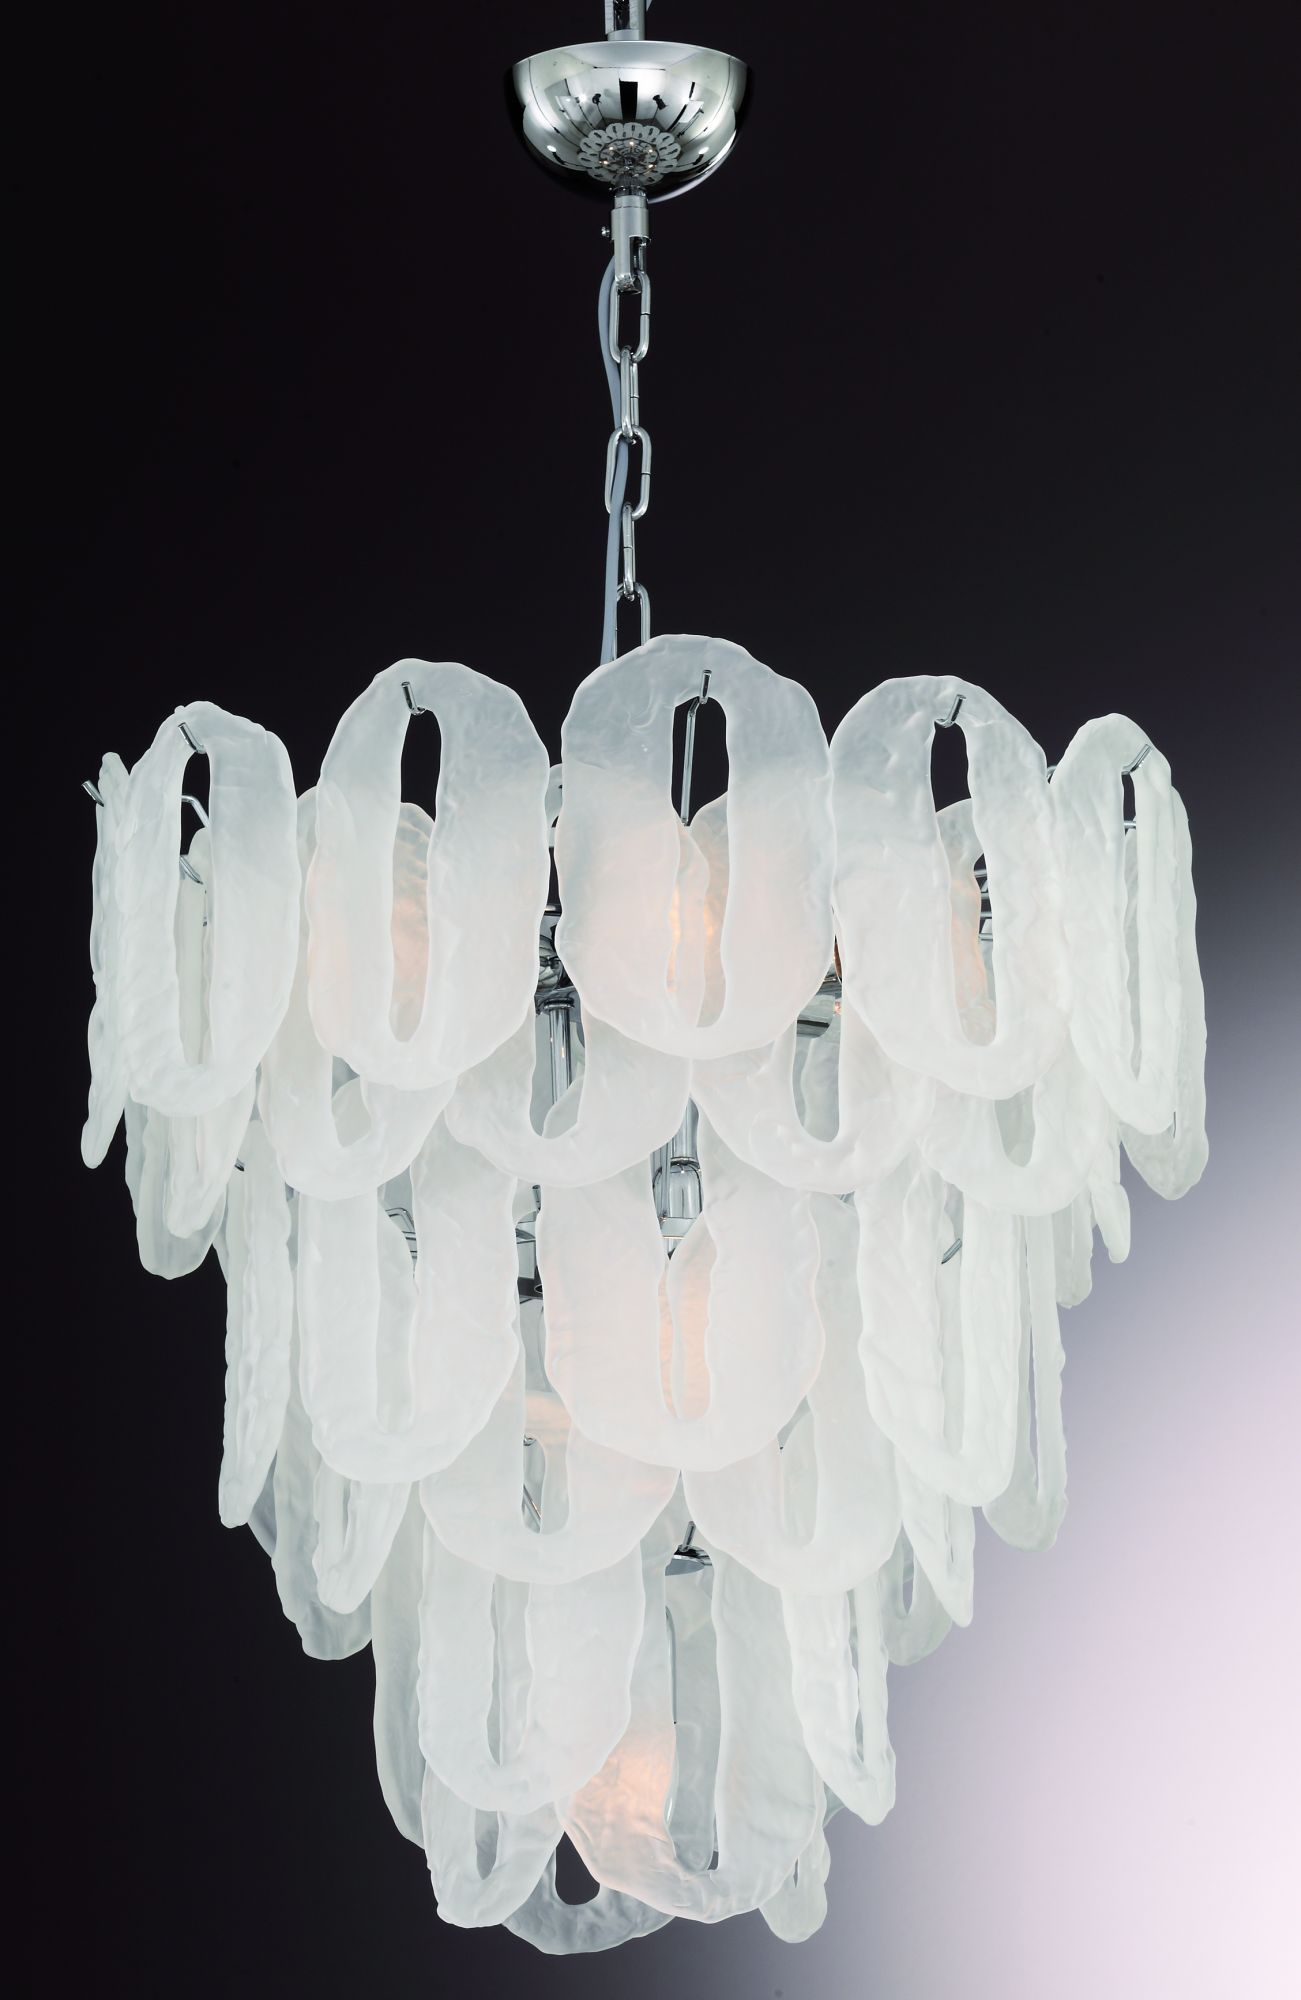 A Worldwide Custom Chandelier Service With Very Professional Team Here To Make The